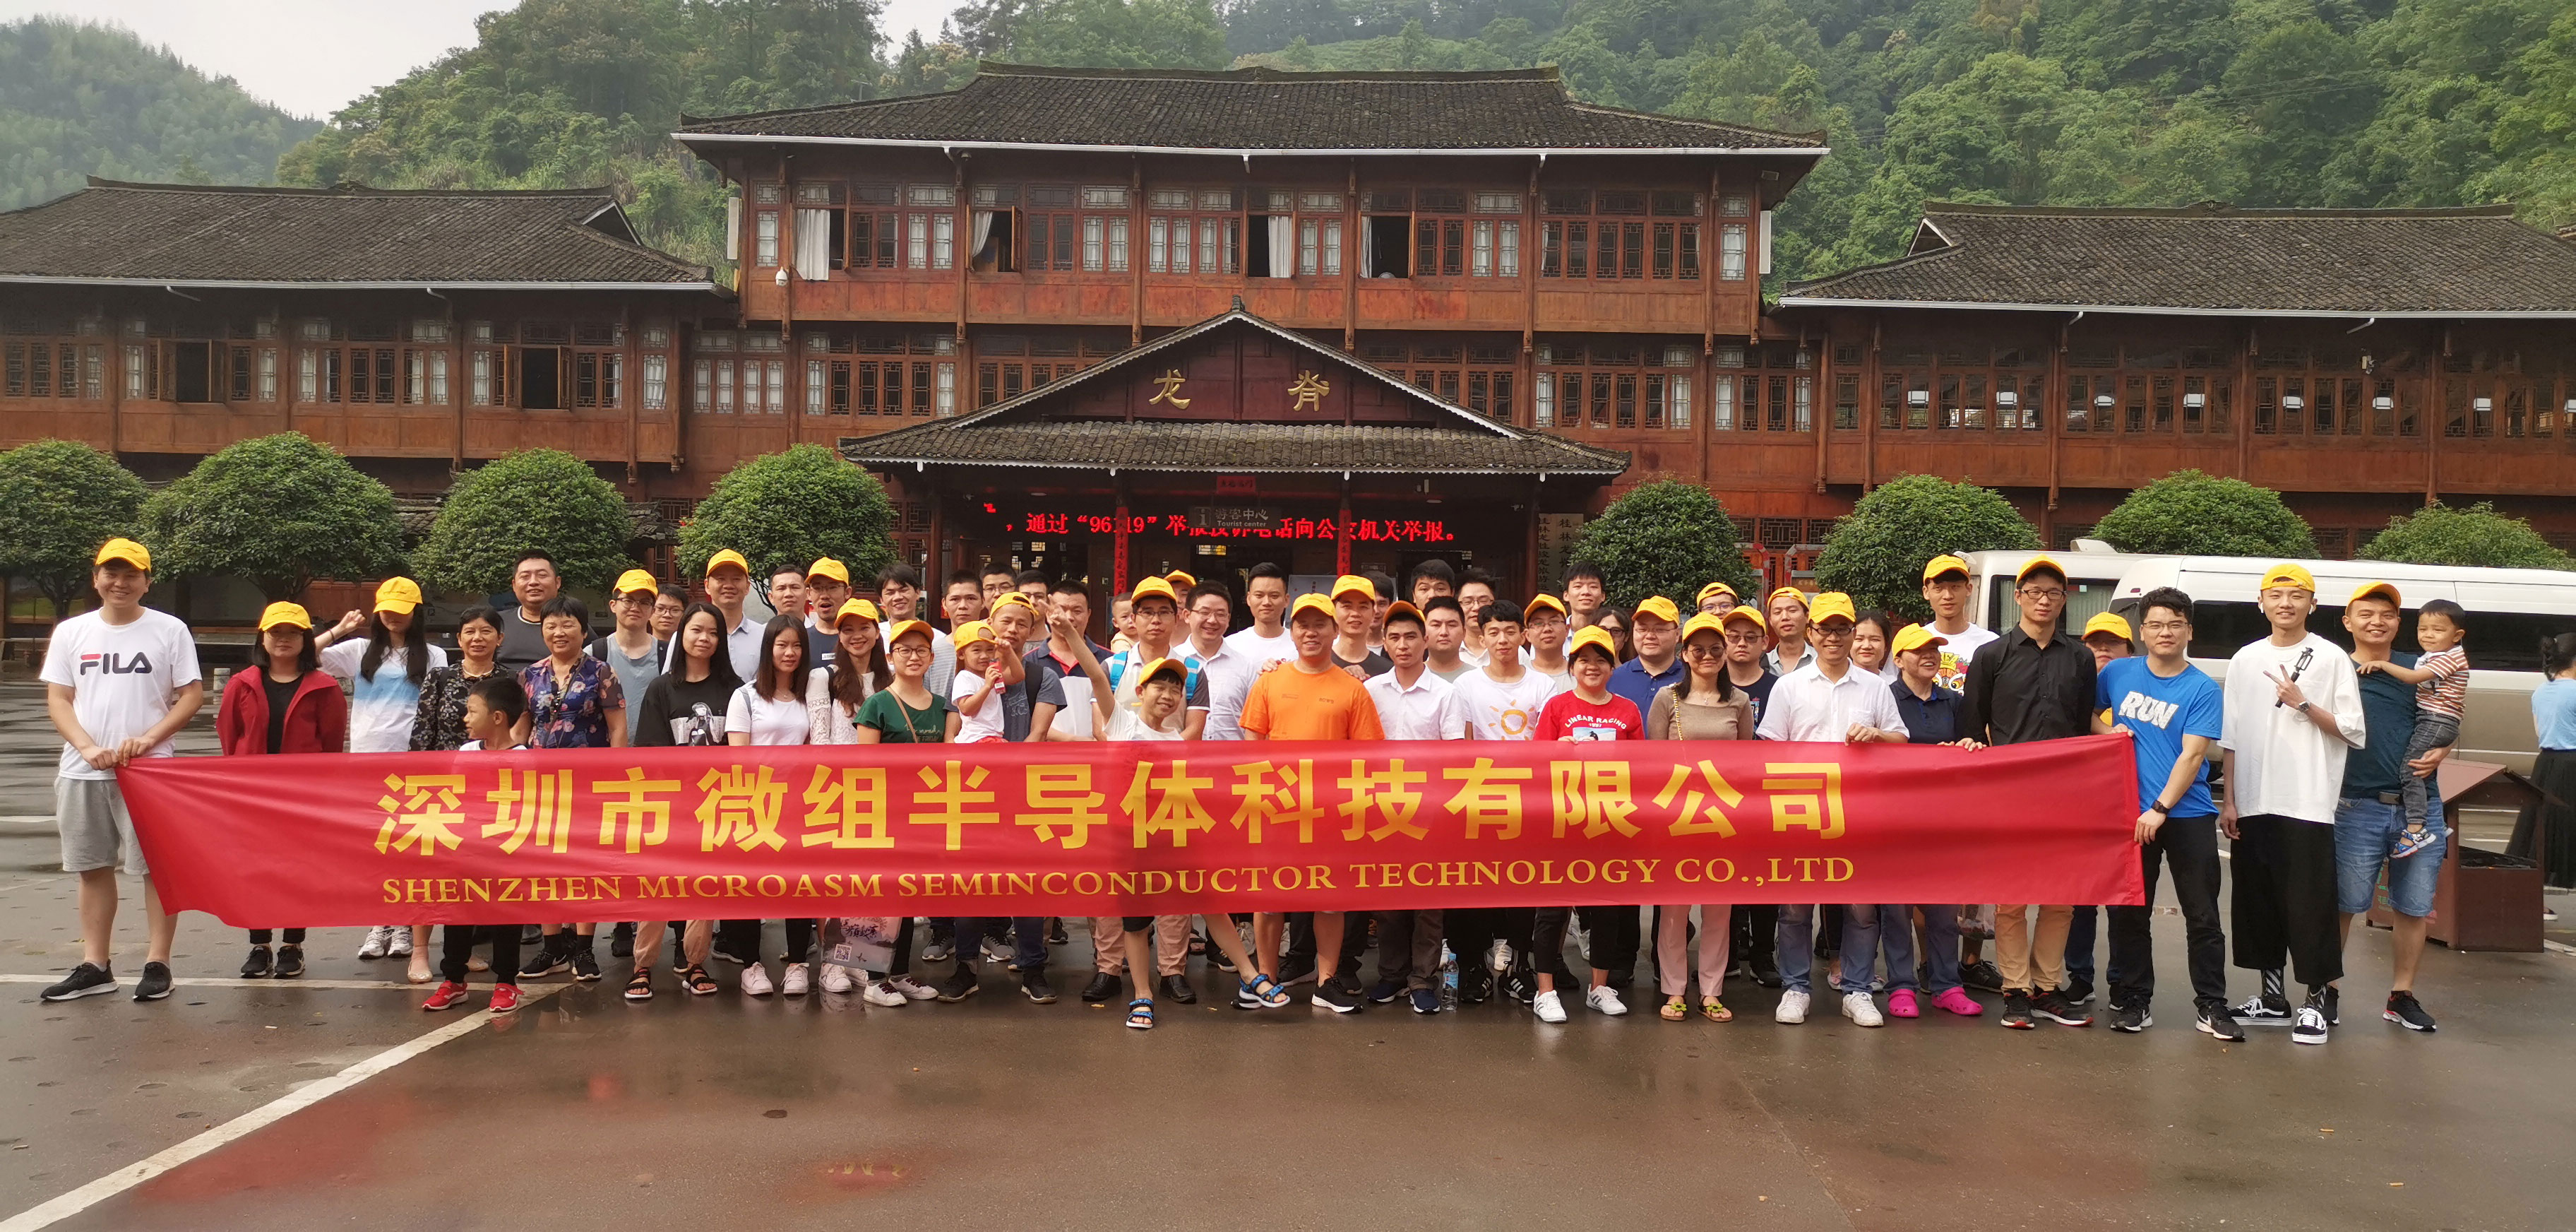 MicroASM Semiconductor Three Days Tour! Traveling With Guilin's Mountains And Waters